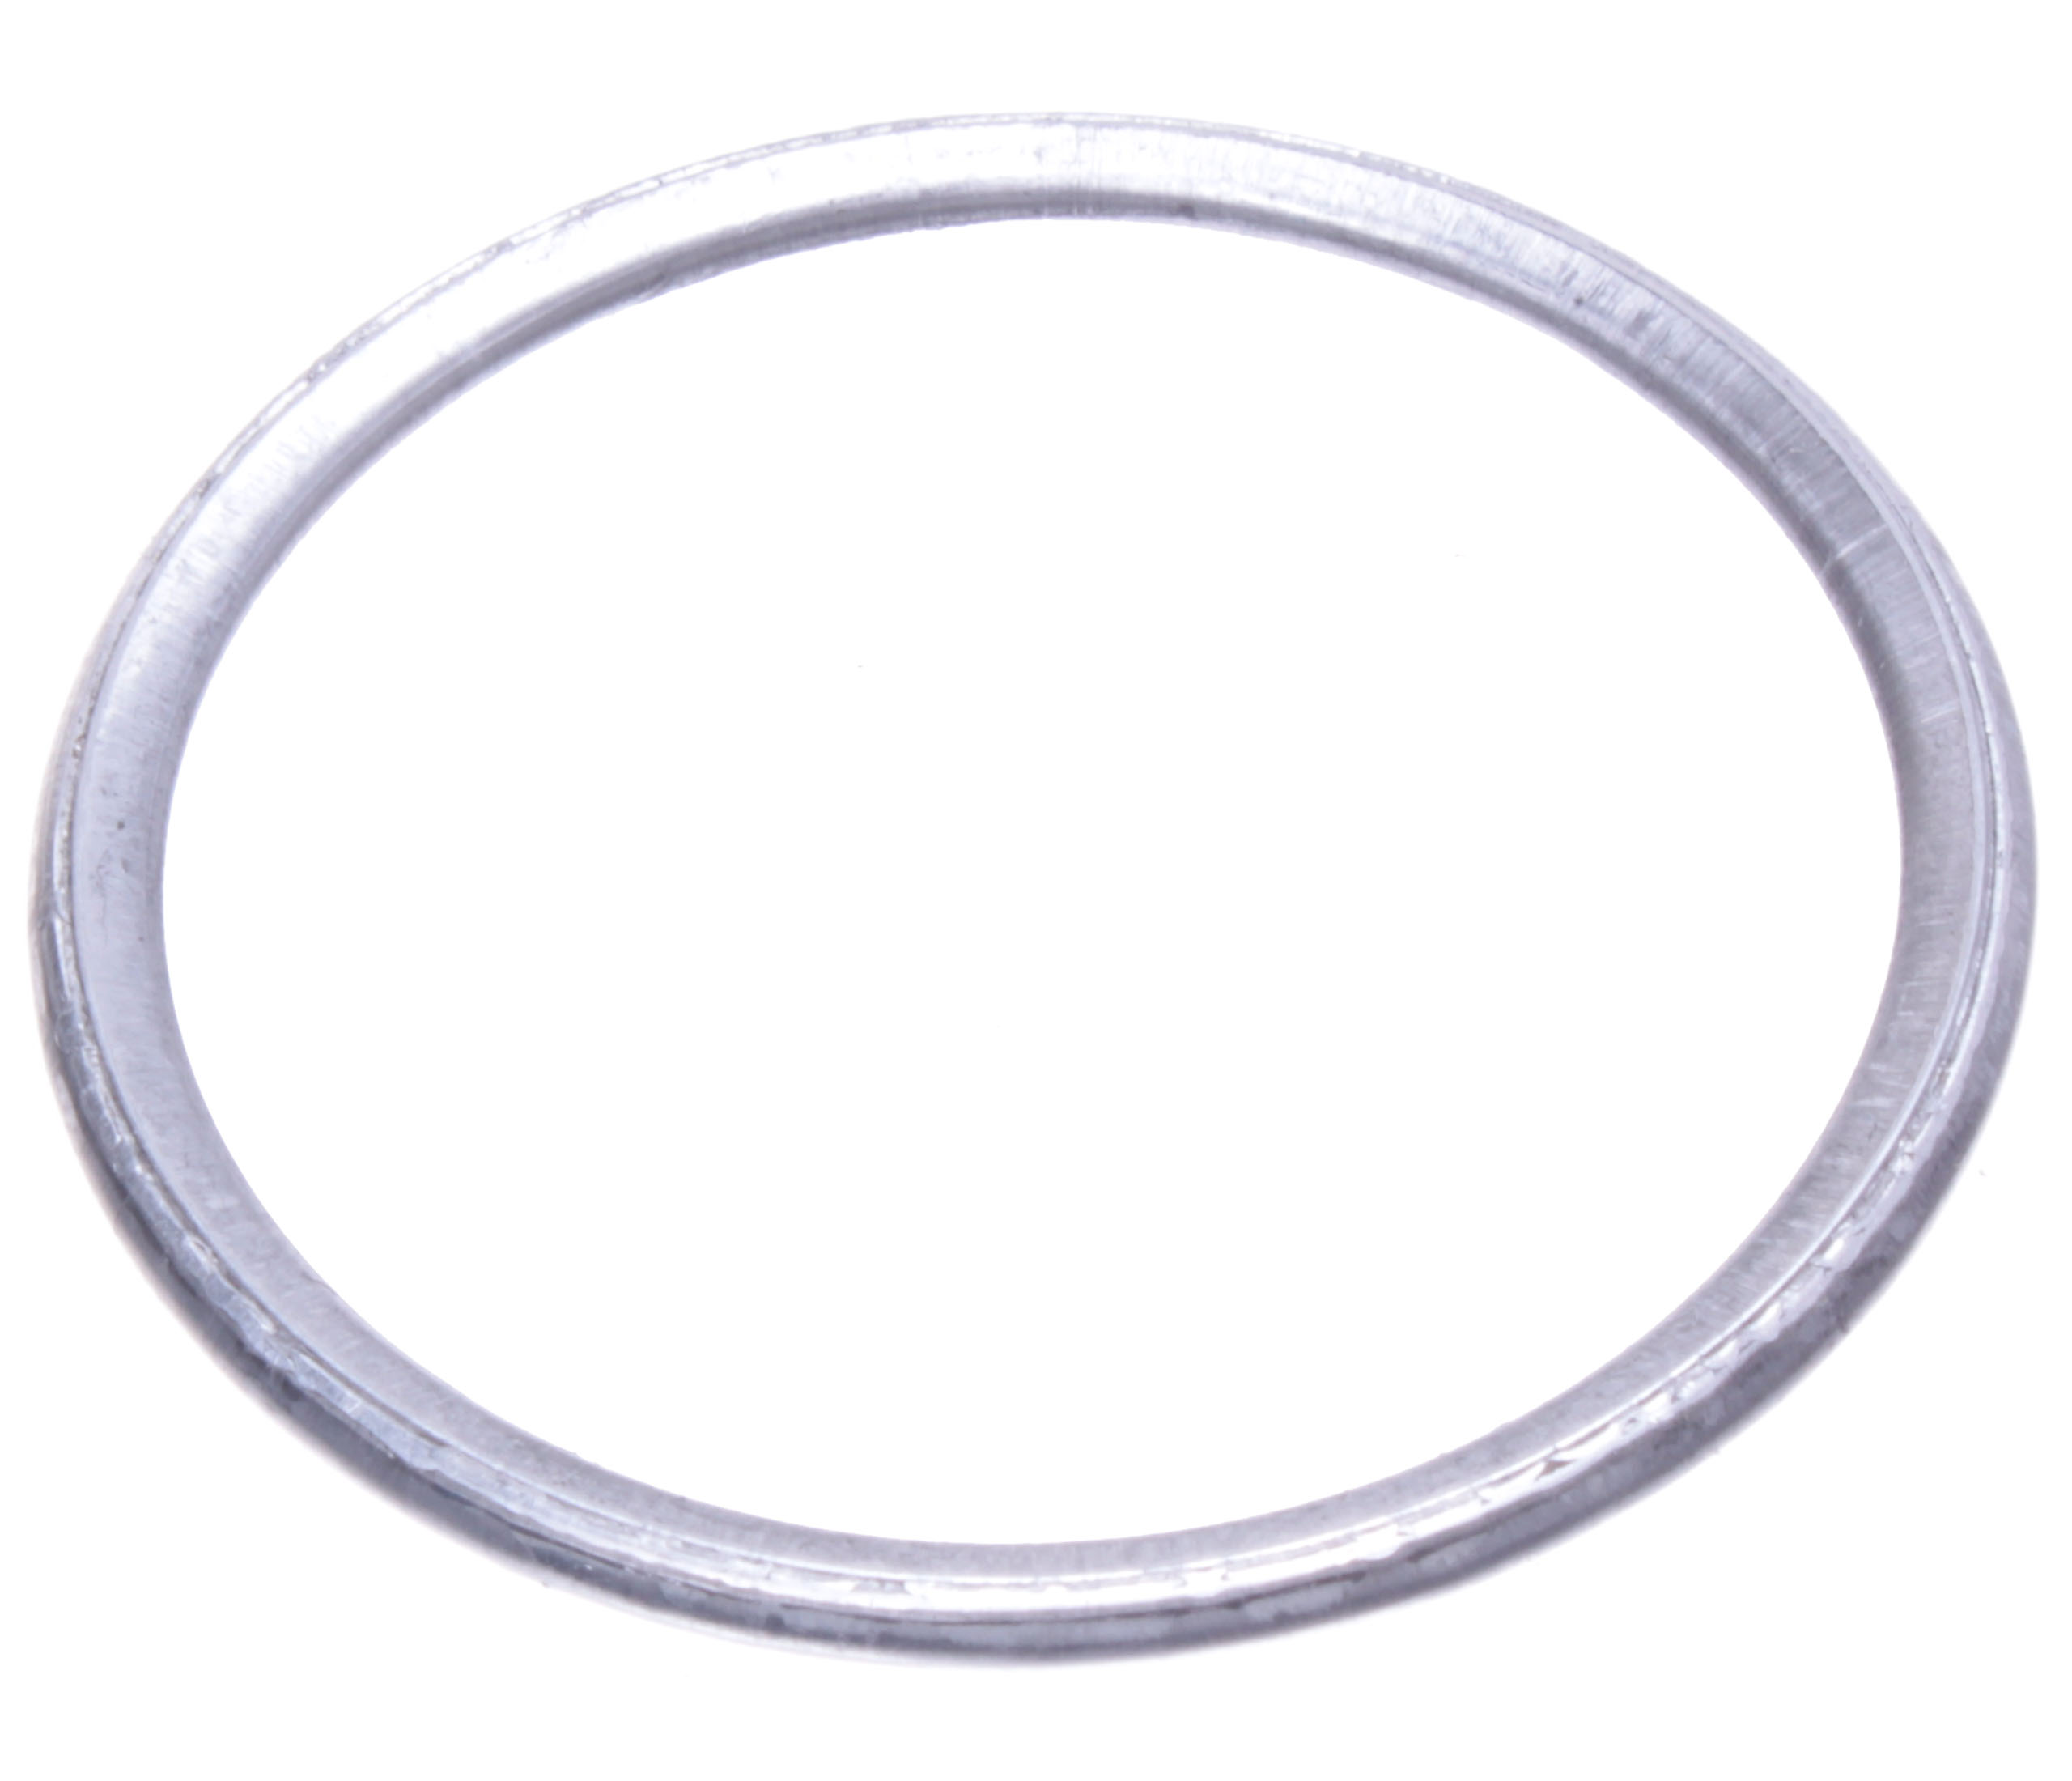 MZ ETZ 150 TS SHL GASKET THE WHEEL EXHAUST